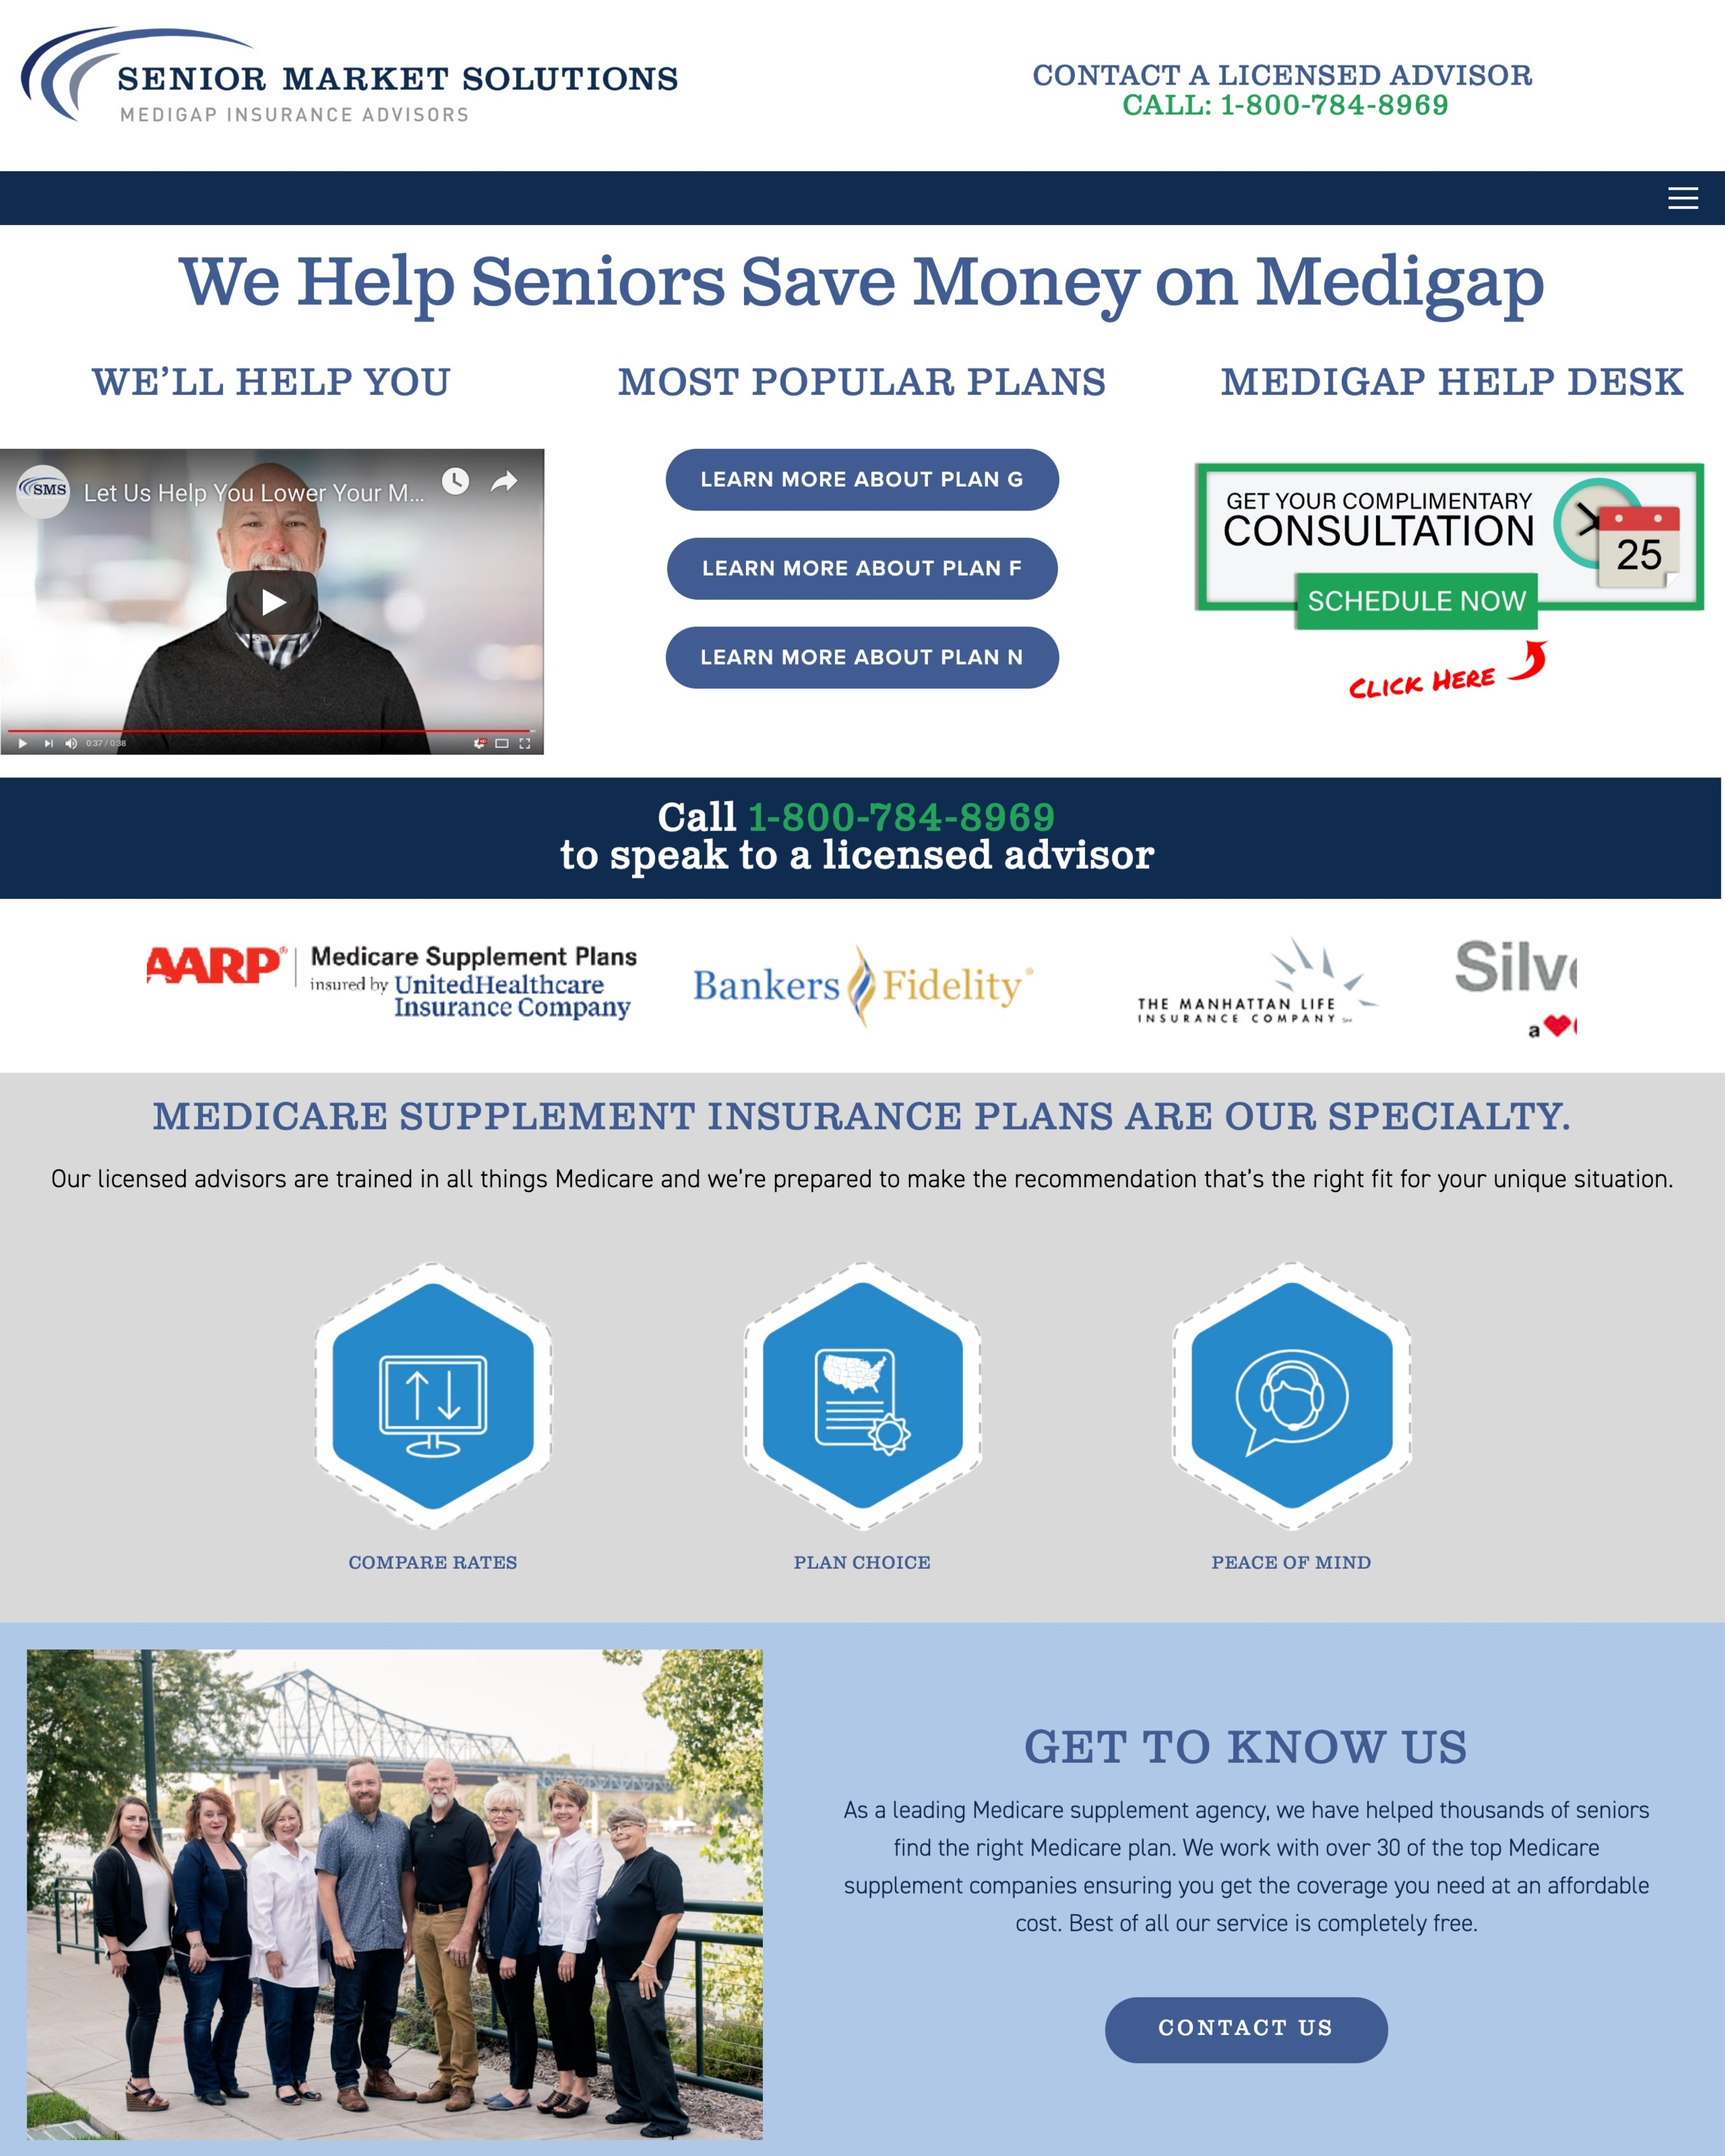 screencapture-seniormarketsolutions-2019-08-12-17_31_33.png